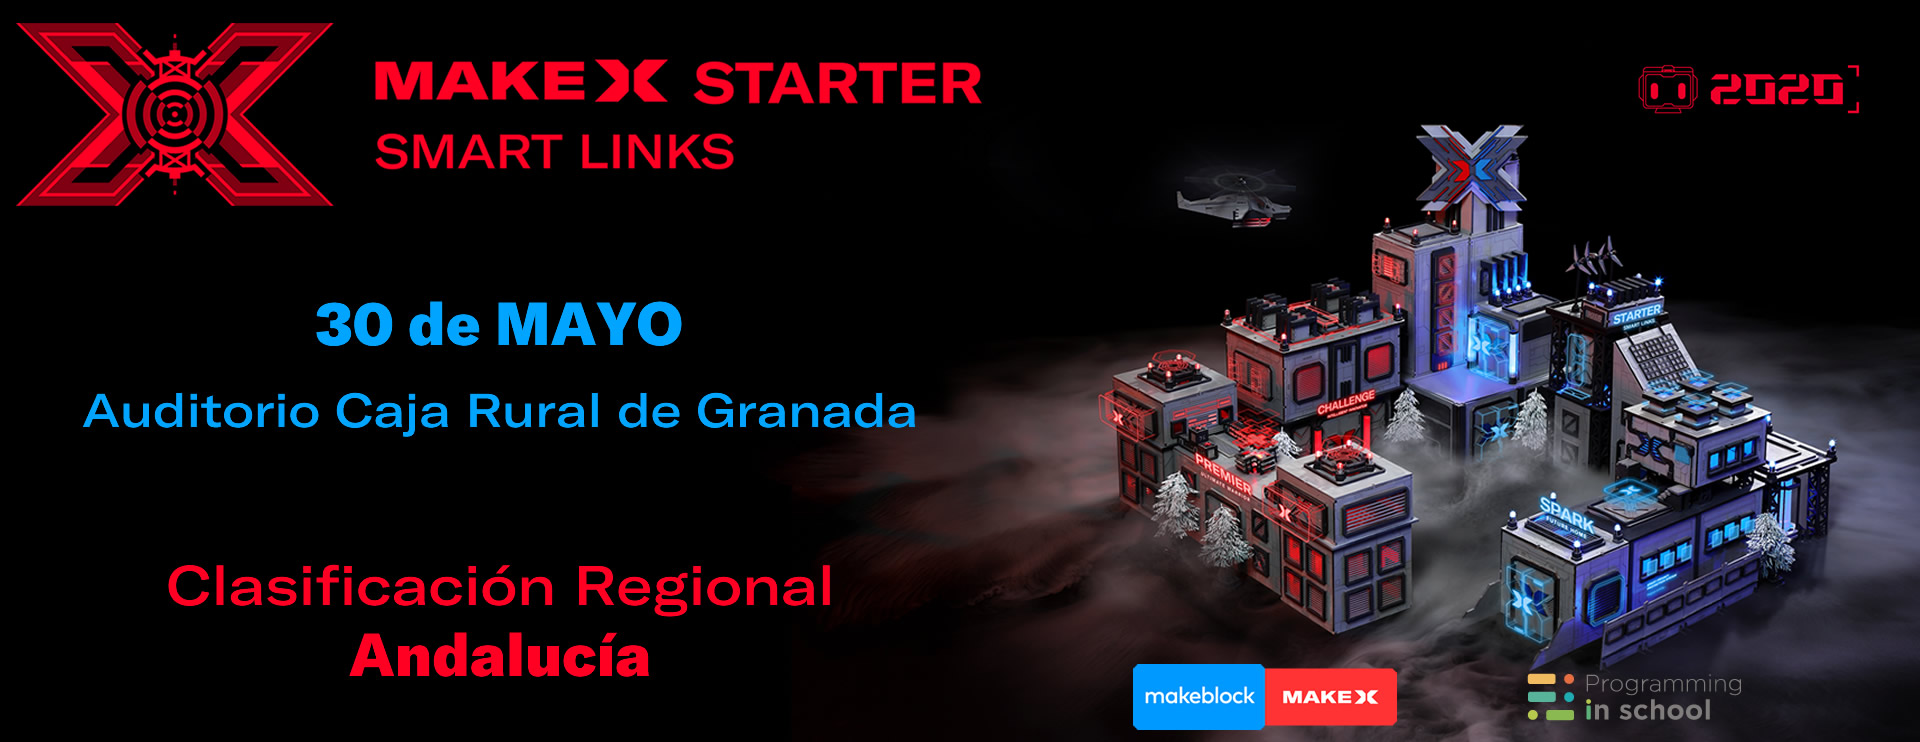 Banner MakeX Andalucia 30 MAYO 2020